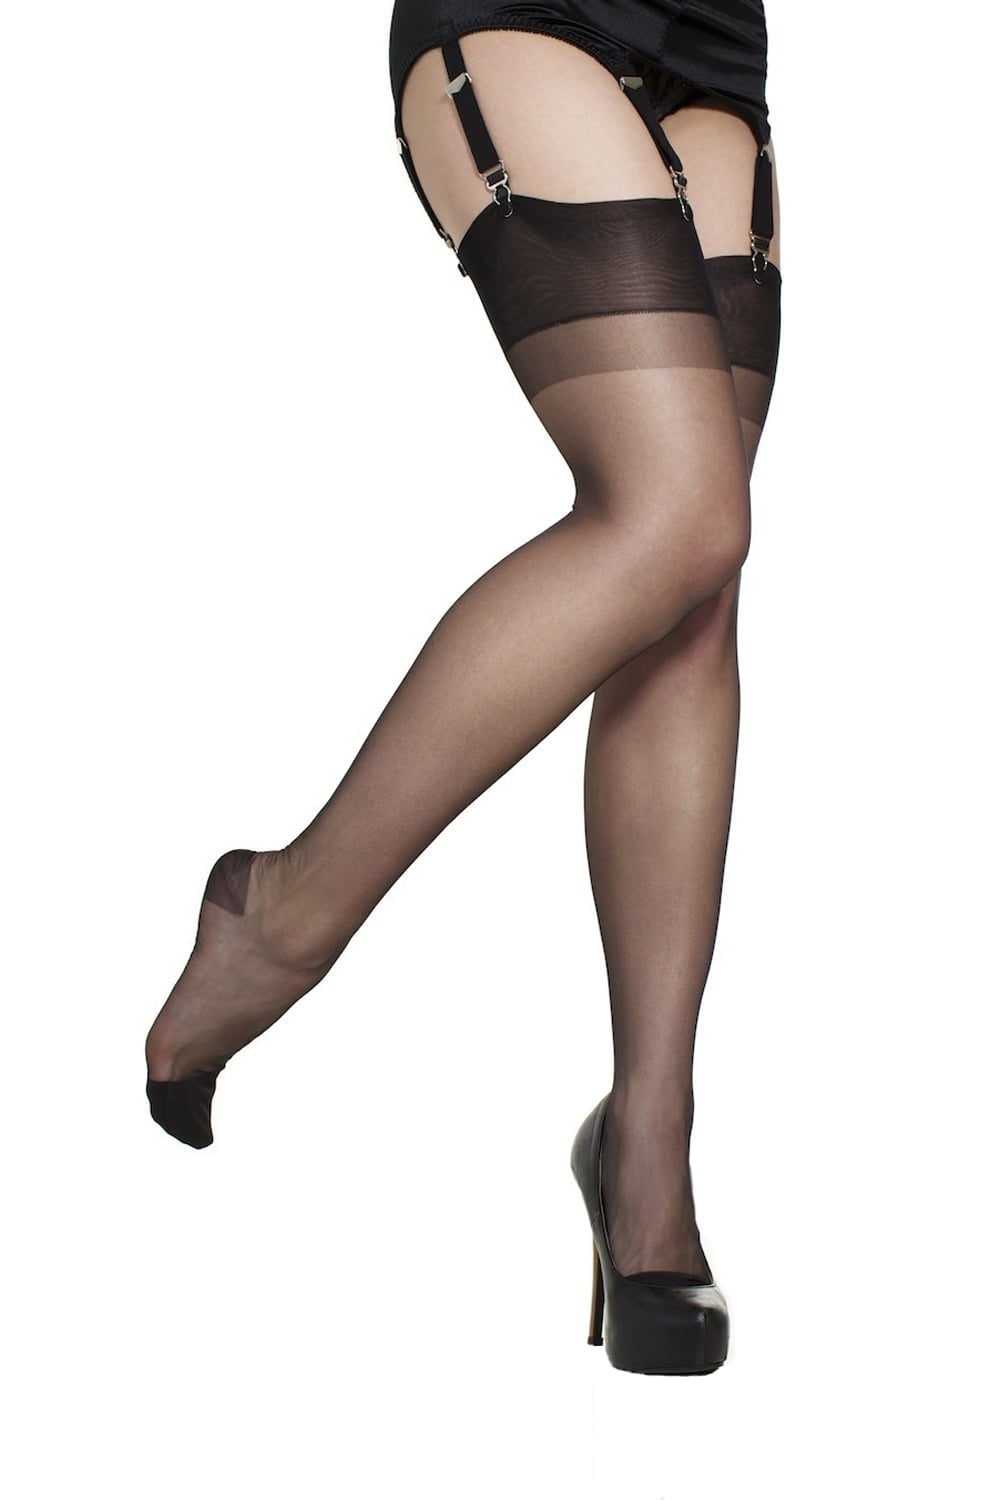 155d7cd8f Gio Reinforced Heel and Toe Stockings